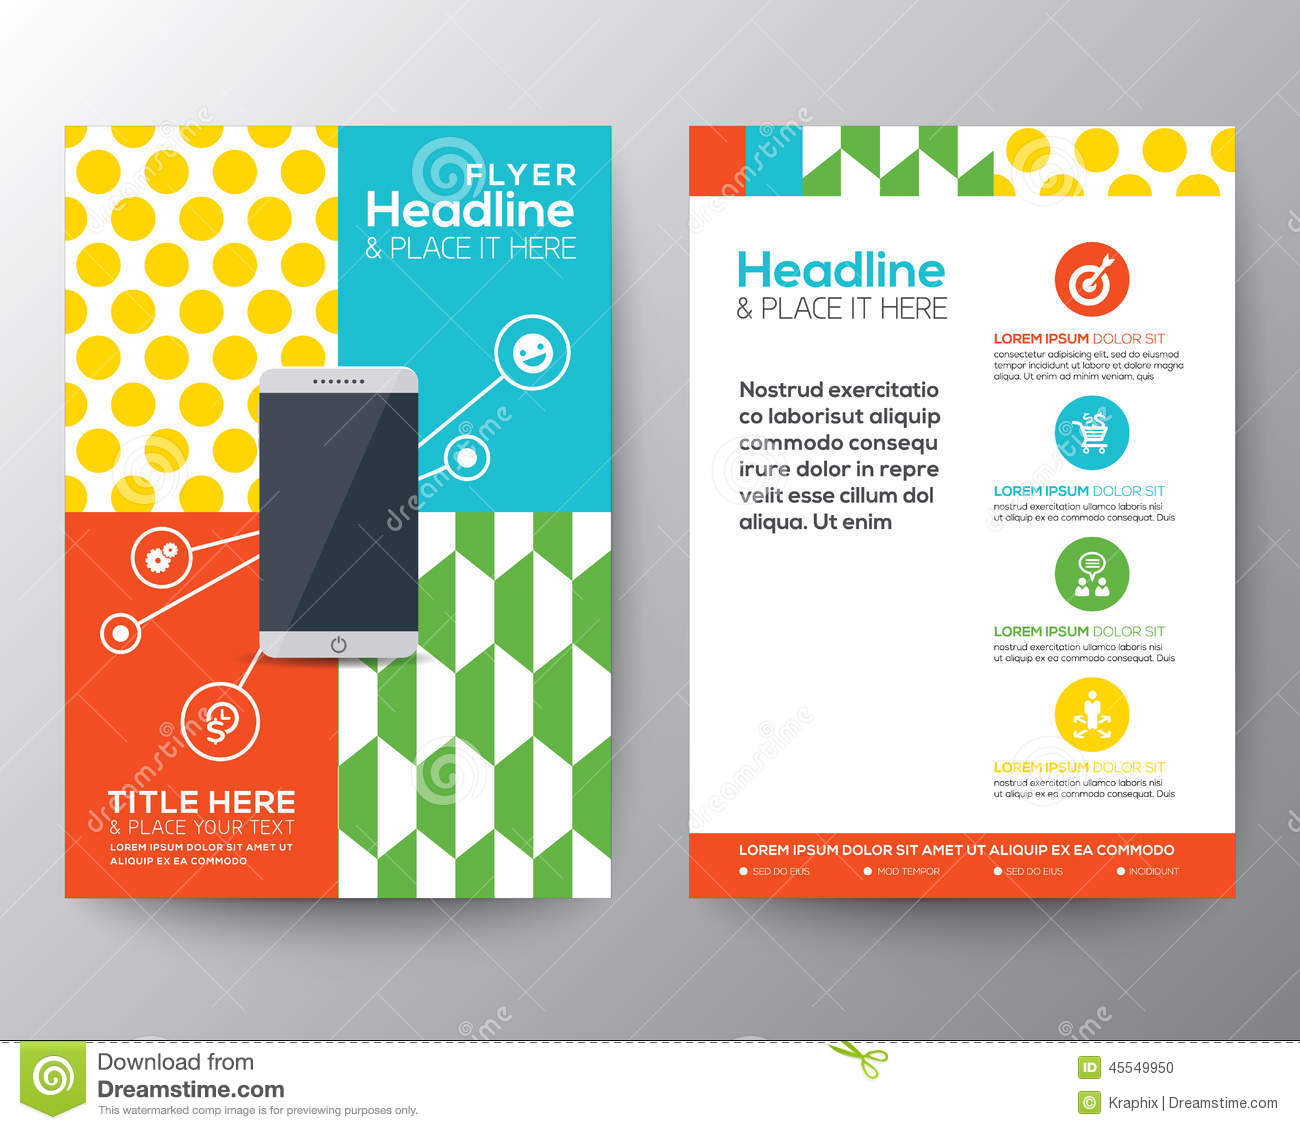 graphic design brochure templates - graphic design layout with smart phone concept template